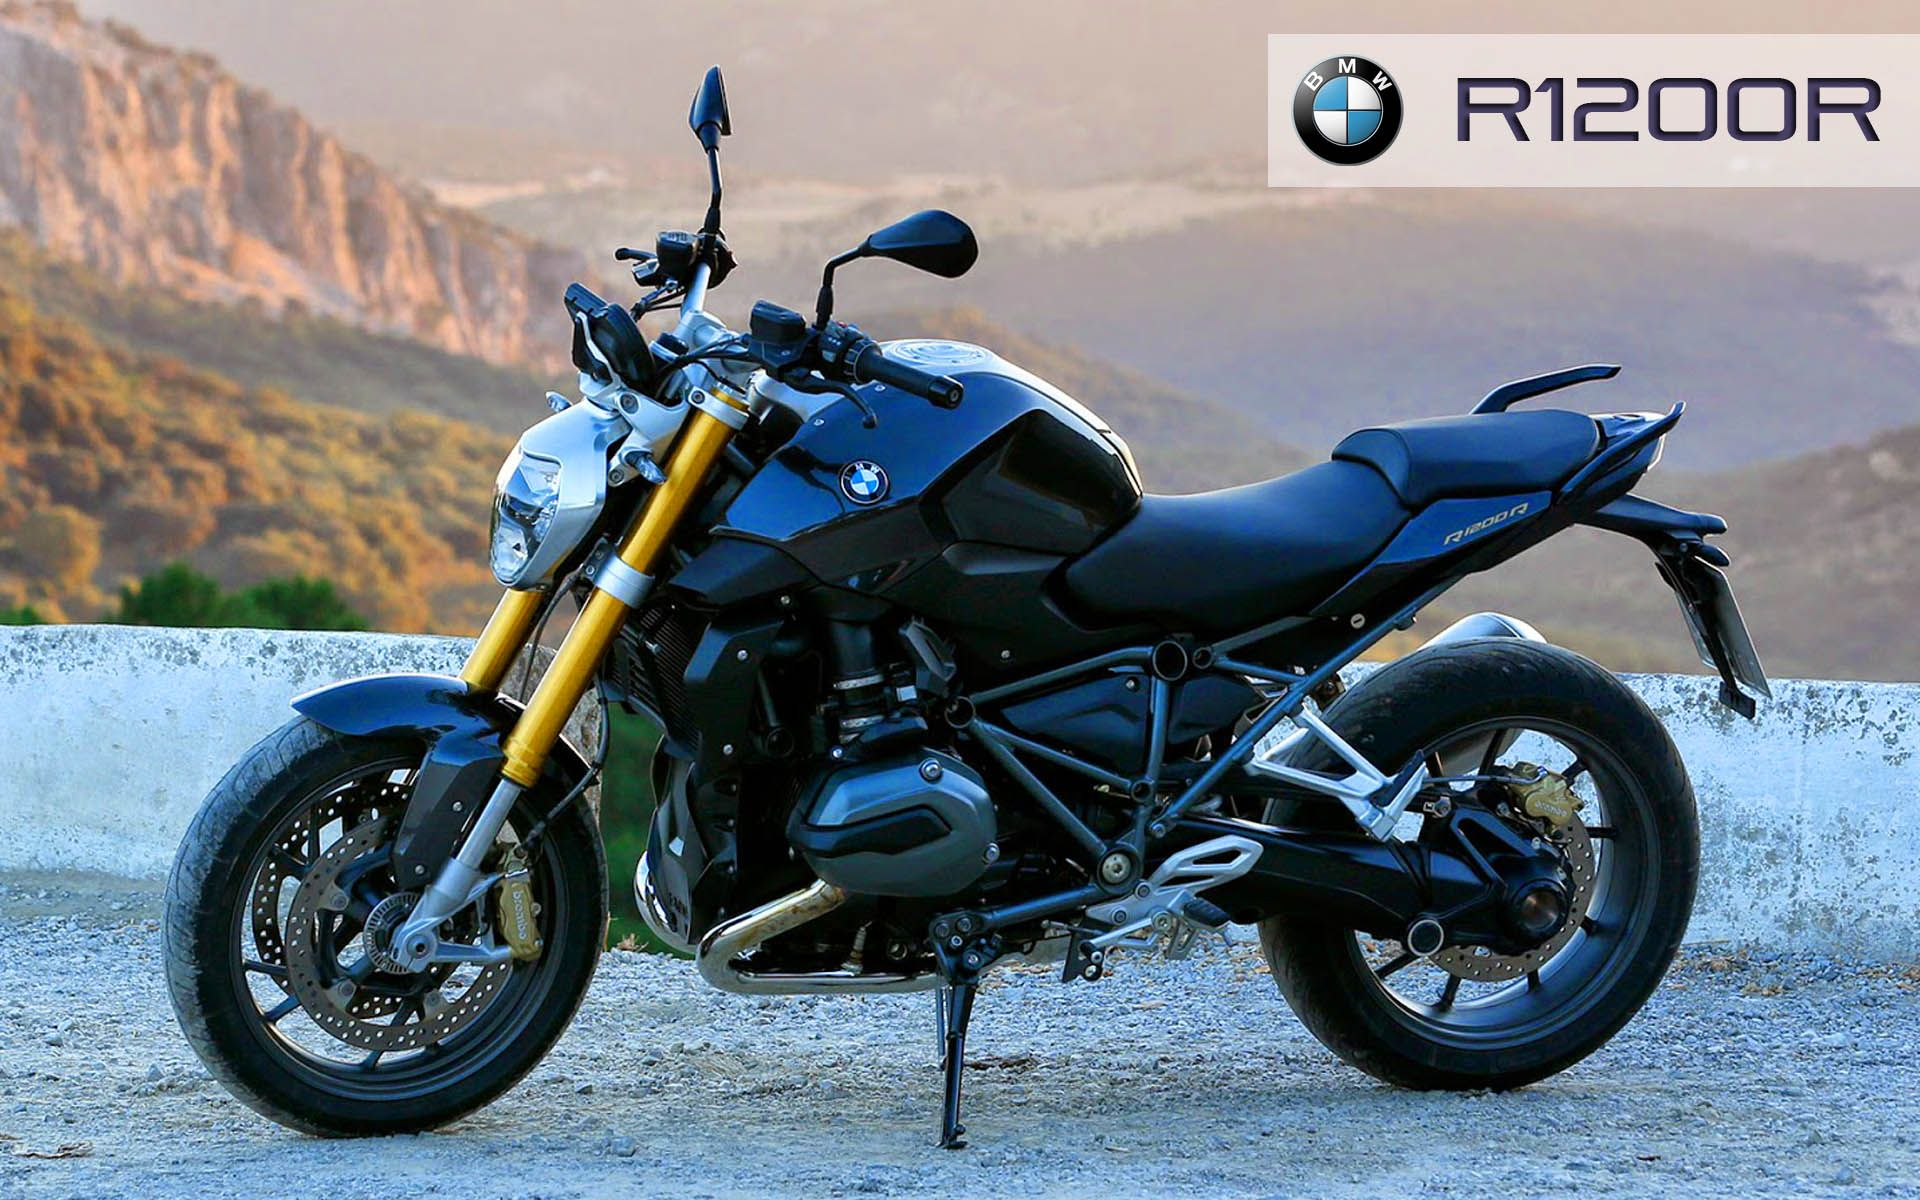 black bmw r1200r 2015 wallpaper motorcycles hd wallpaper pinterest 2015 wallpaper bmw and. Black Bedroom Furniture Sets. Home Design Ideas